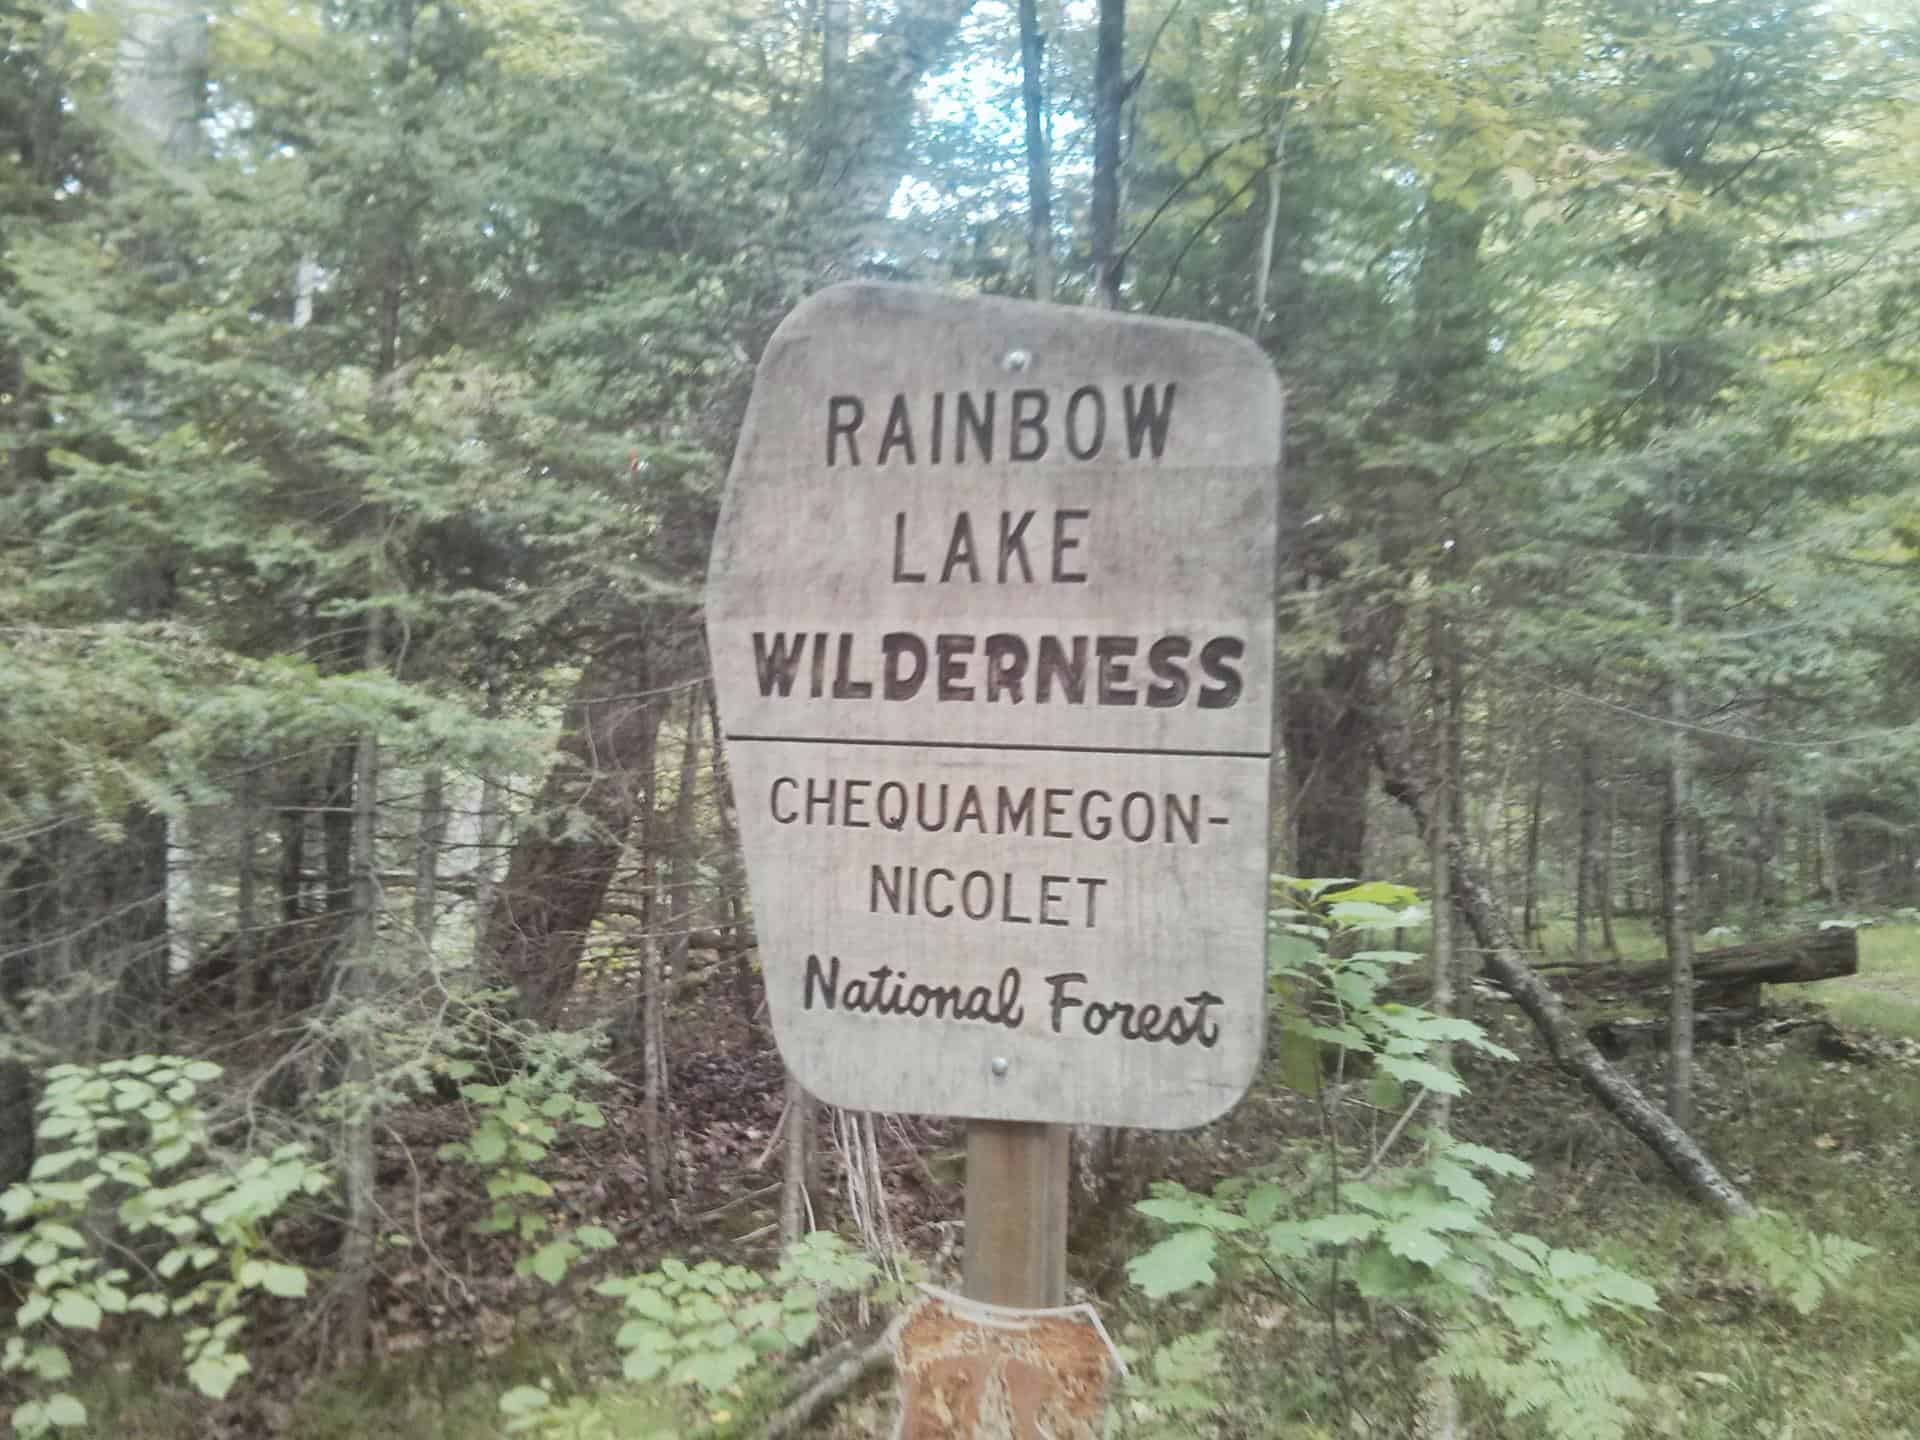 Welcome to Rainbow Lake Wilderness.